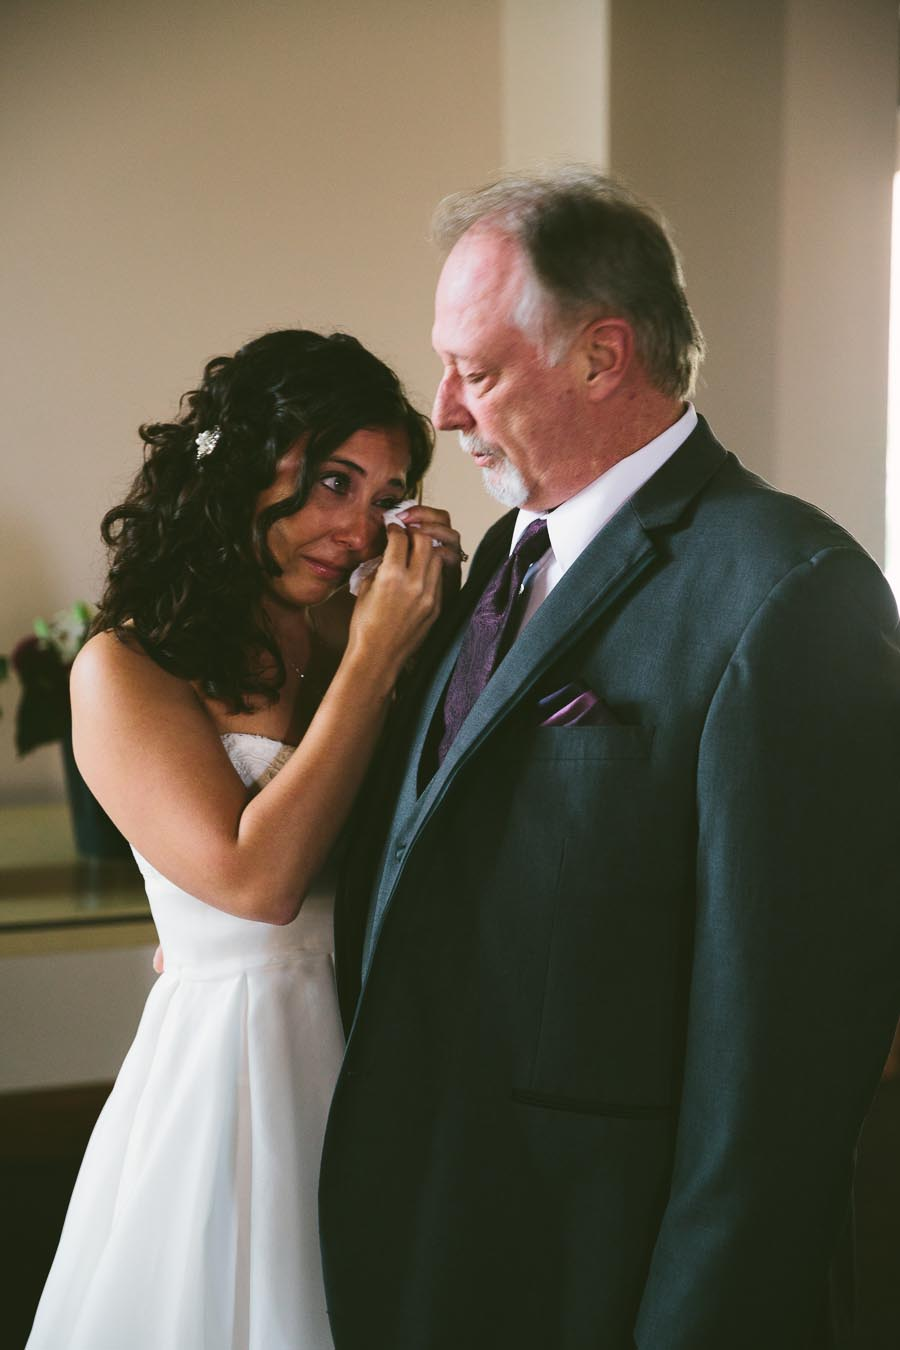 north-olmsted-ohio-wedding-photography-st-clarence-18.jpg